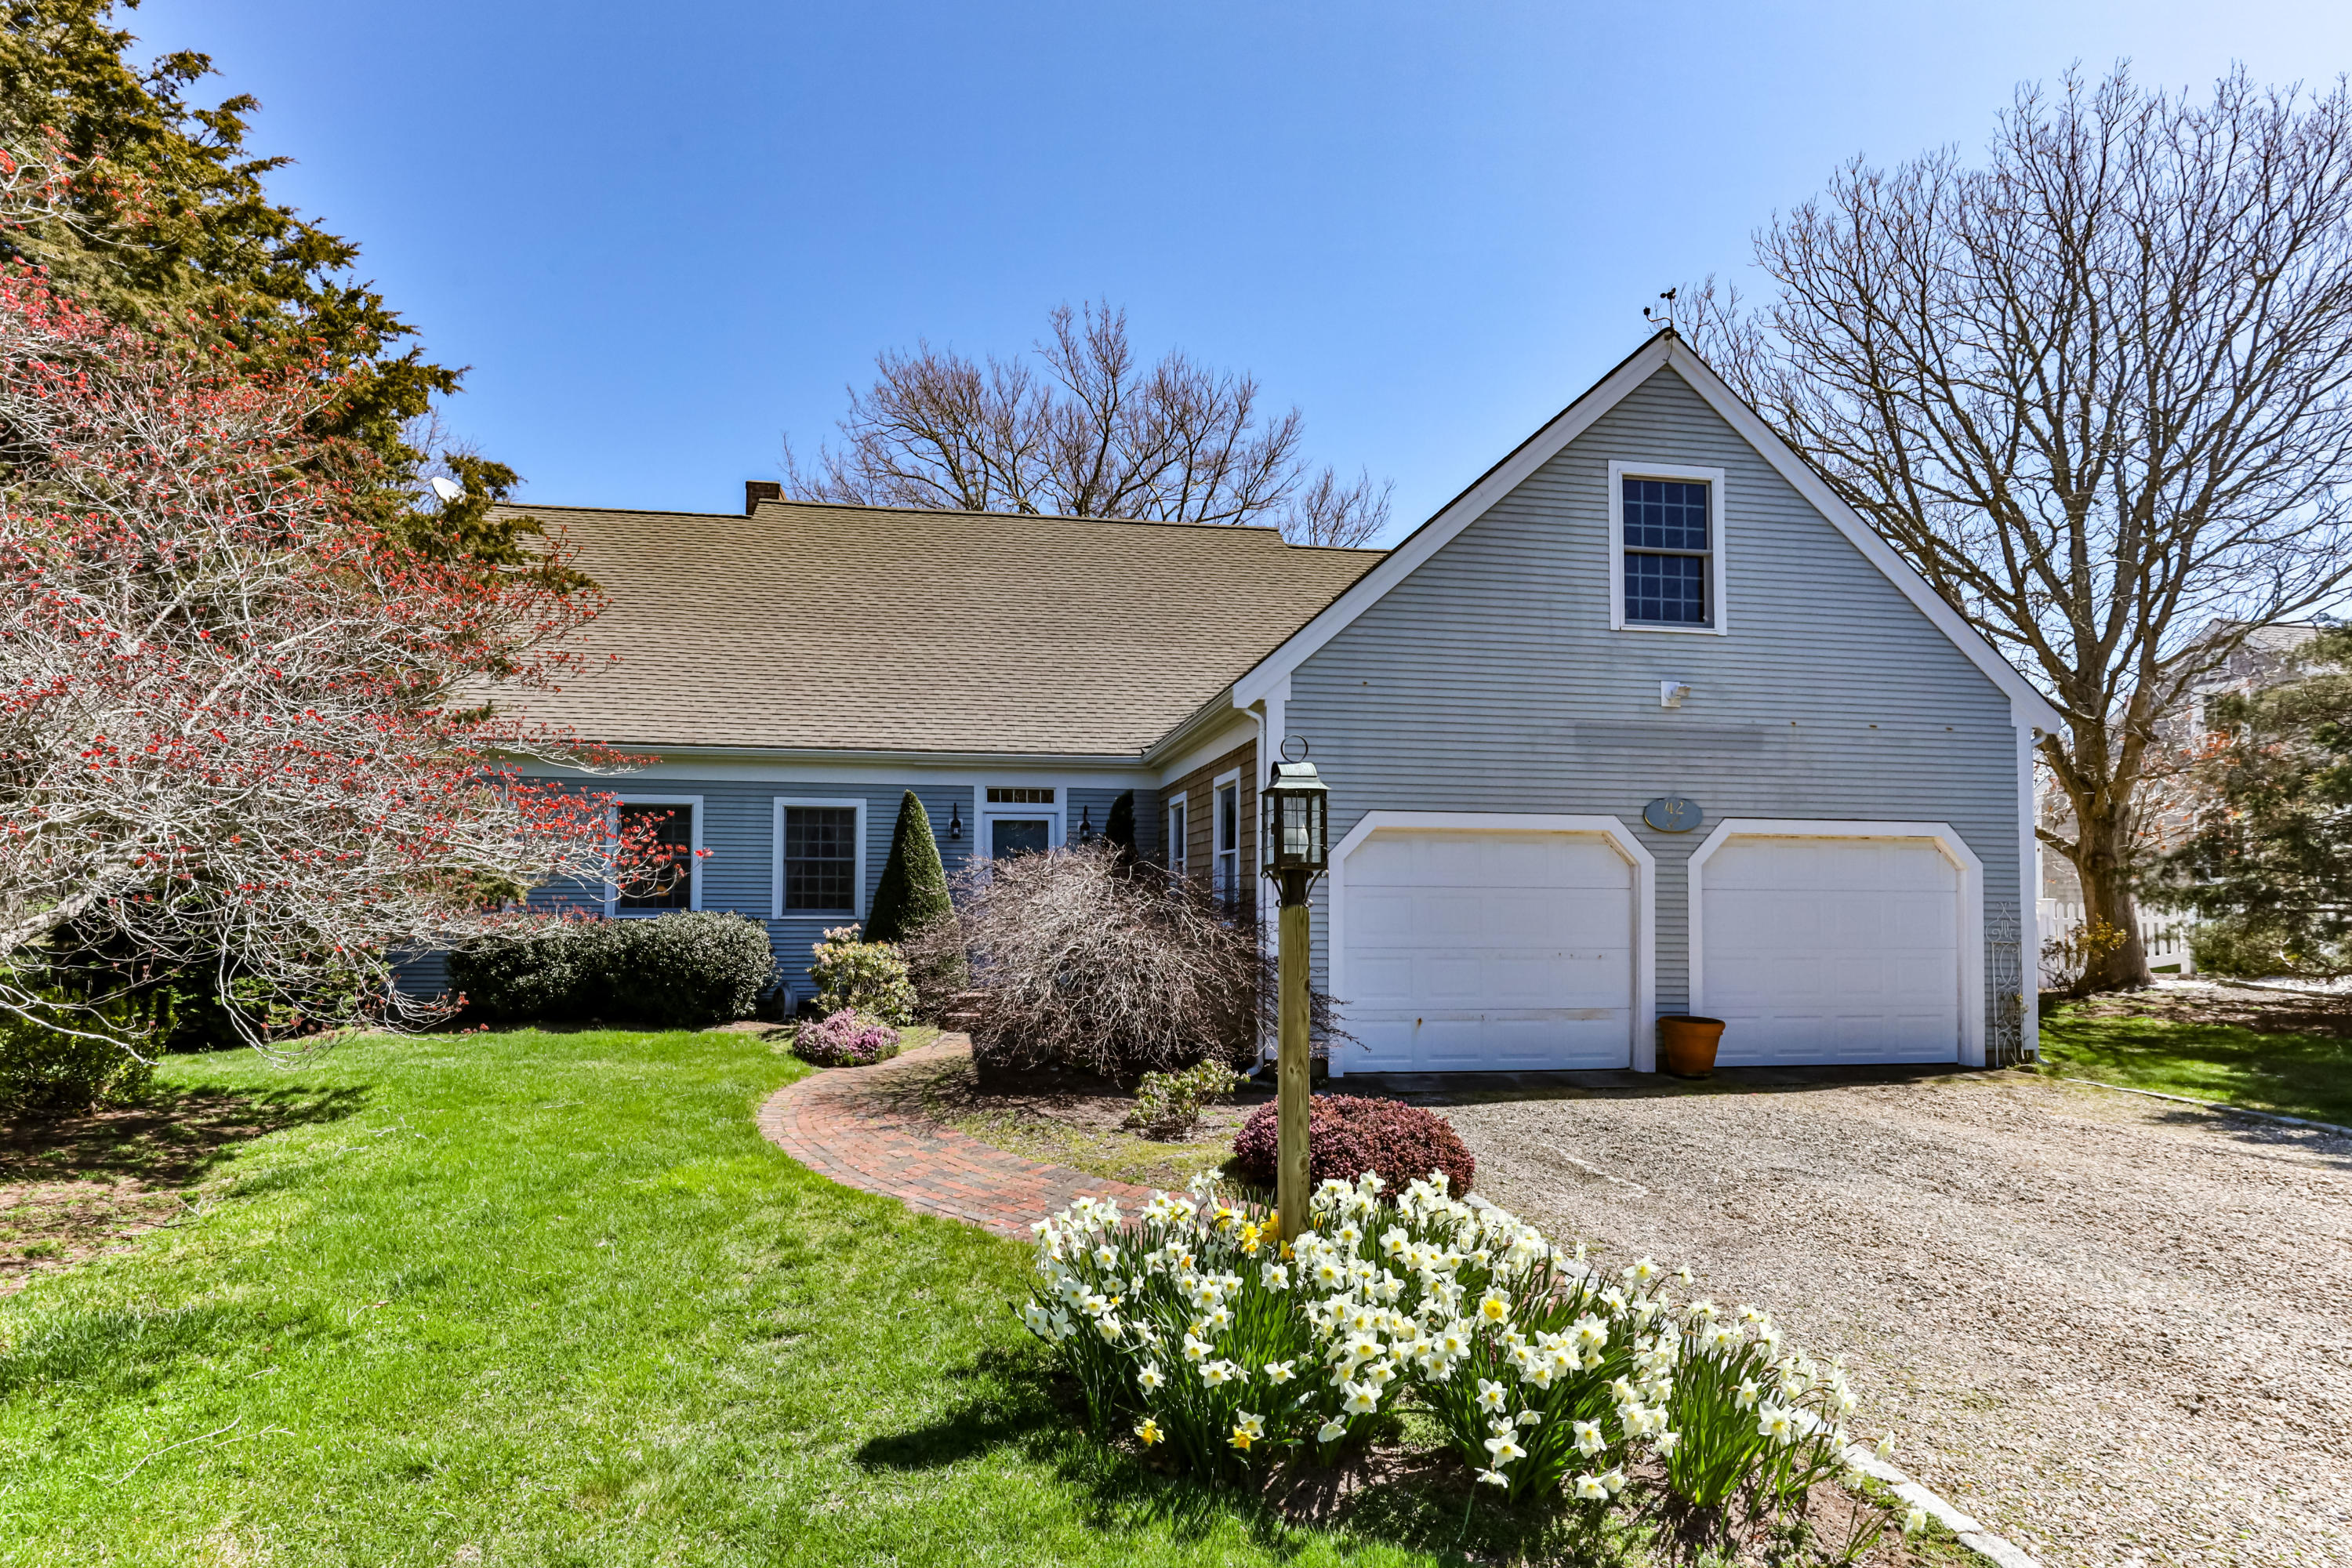 click to view more details 42 Salt Works Road, Brewster, MA 02631